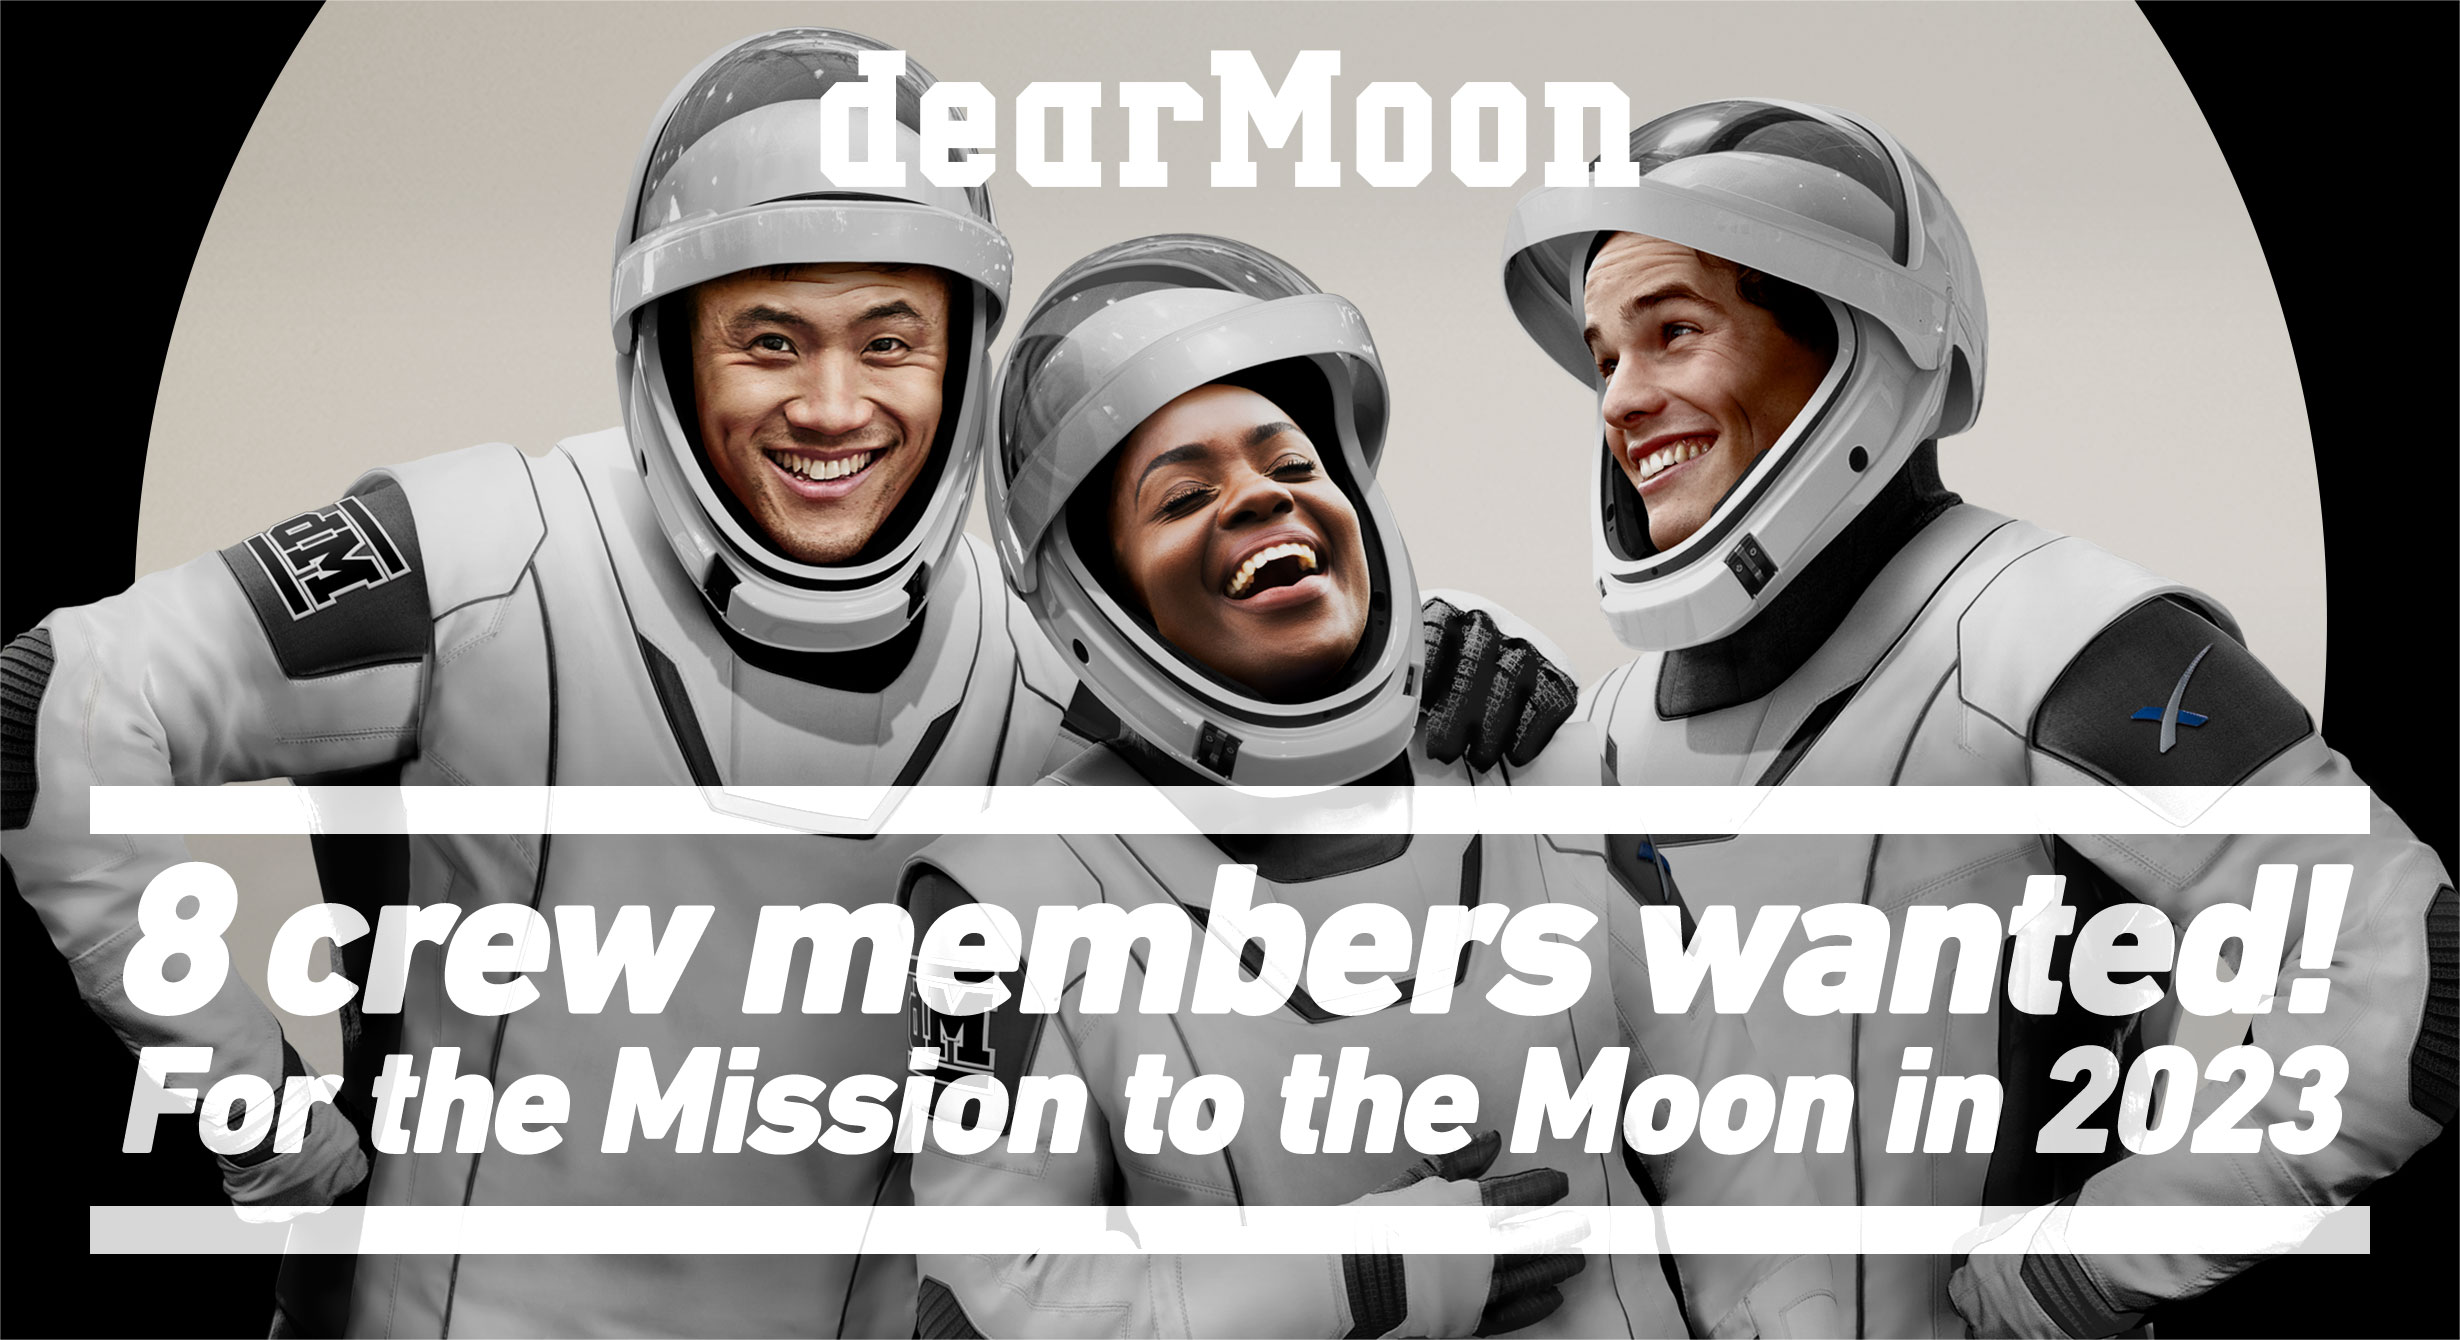 Стартовое изображение сайта dearmoon.earth